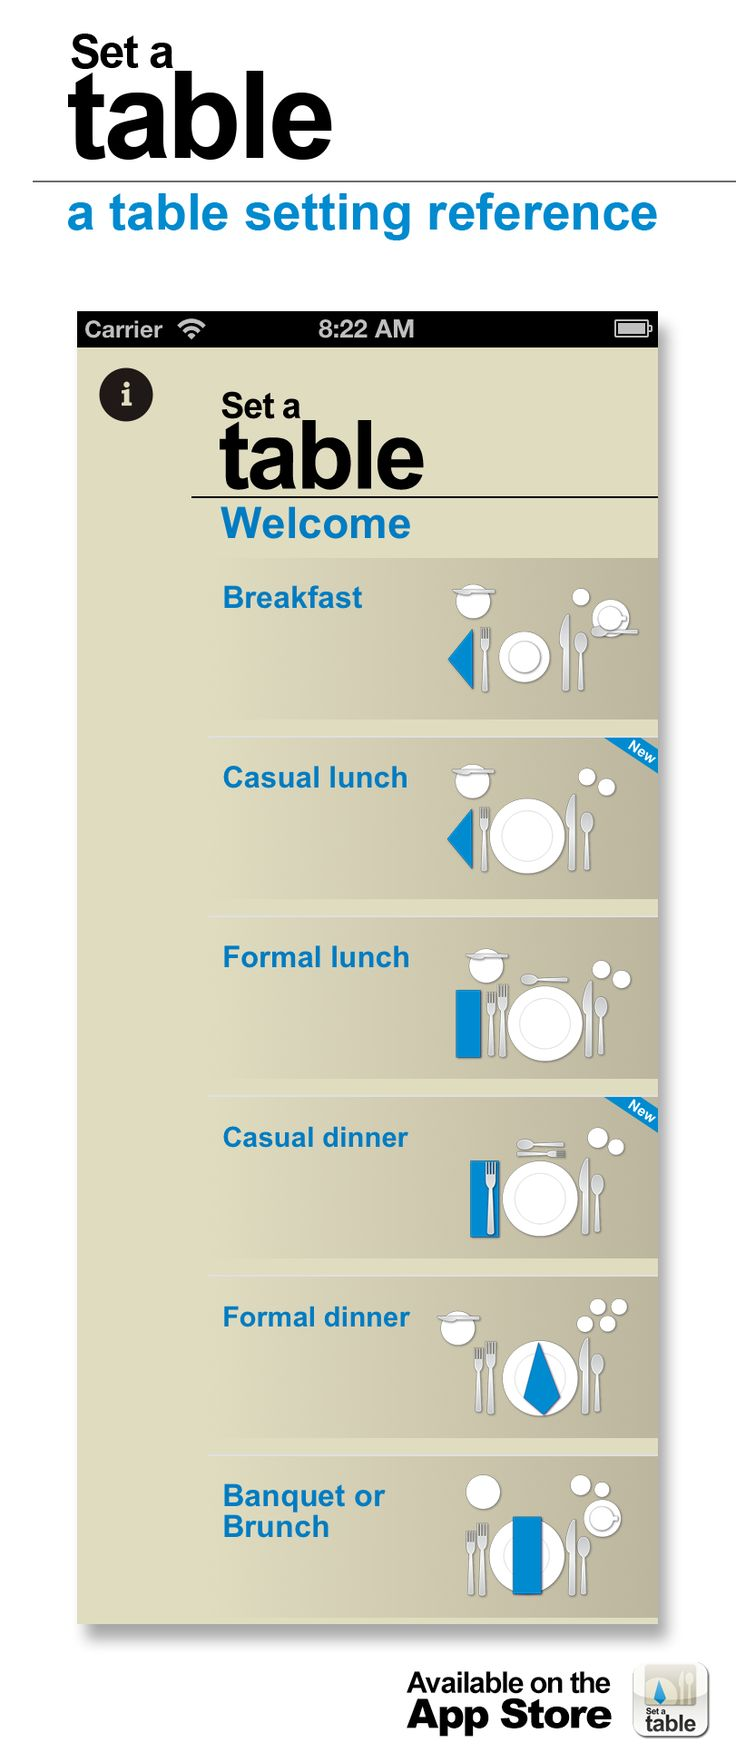 Formal Dinner Table Setting Etiquette - Set a table a table setting reference for iphone